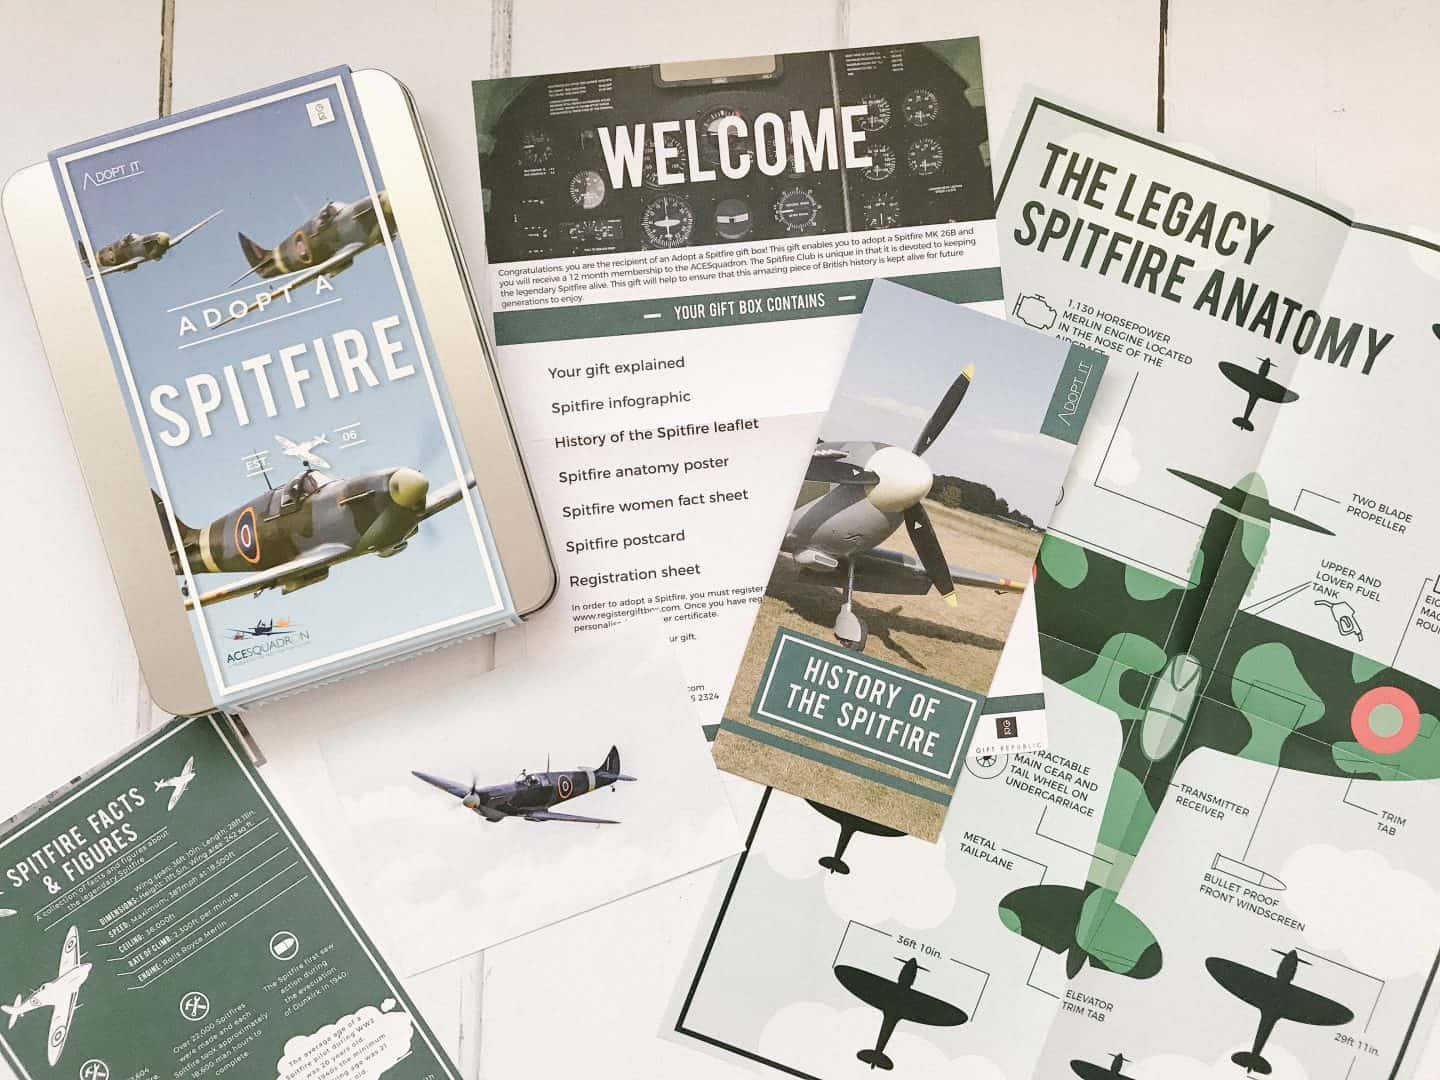 Adopt a Spitfire Gift Pack is a great Father's Day gift idea